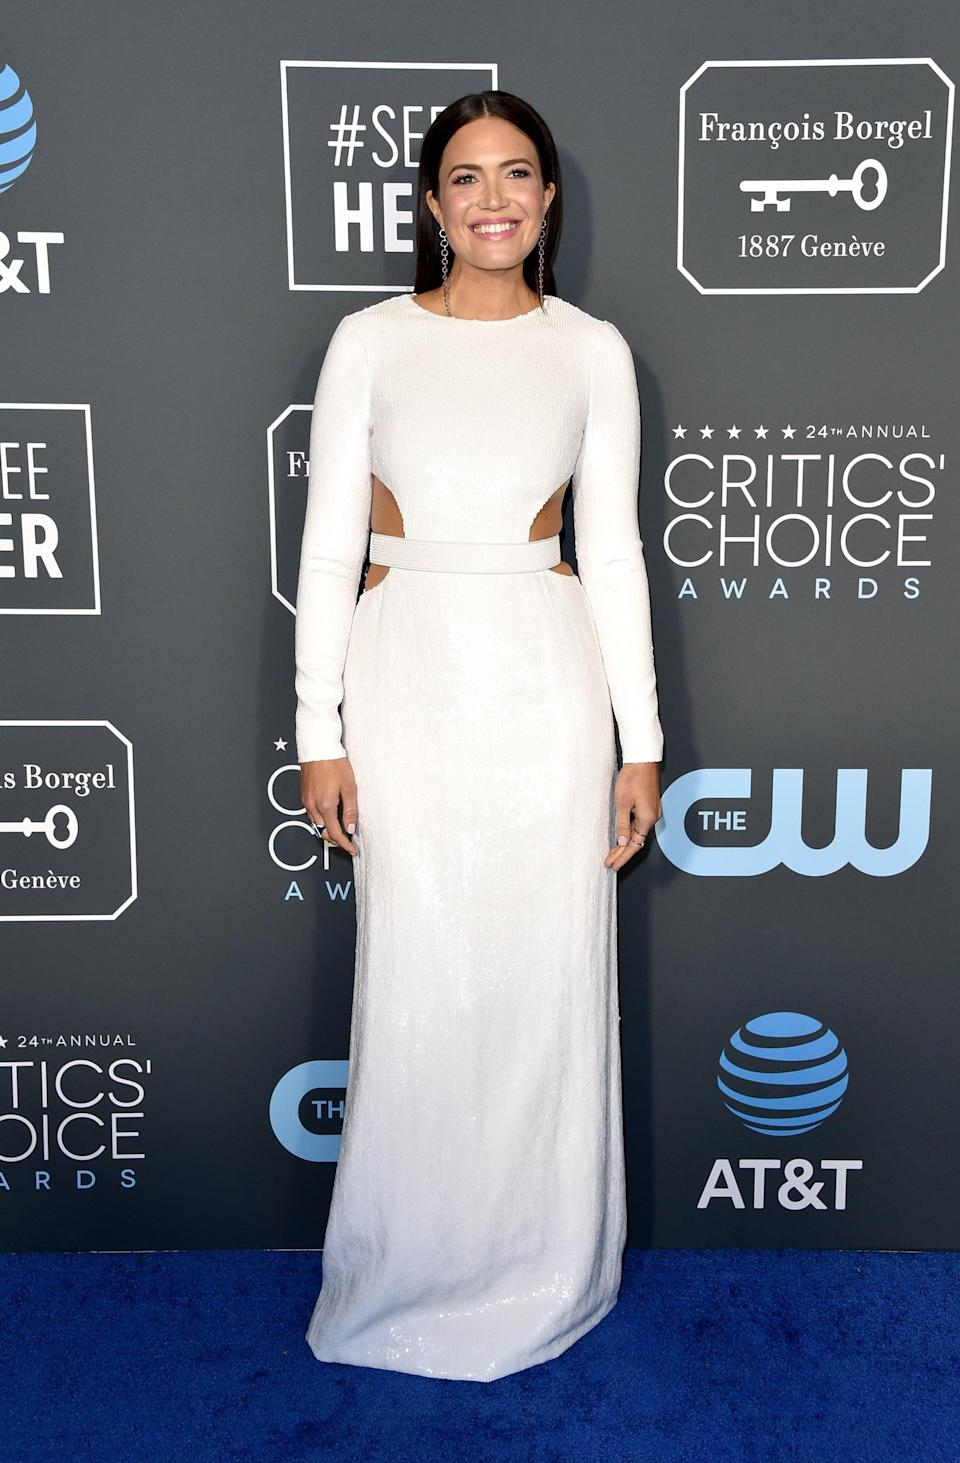 """<p><a rel=""""nofollow noopener"""" href=""""https://www.popsugar.co.uk/Mandy-Moore"""" target=""""_blank"""" data-ylk=""""slk:Mandy Moore"""" class=""""link rapid-noclick-resp"""">Mandy Moore</a> wearing a white cutout dress by Michael Kors Collection with Katkim jewels and Jimmy Choo heels.</p>"""